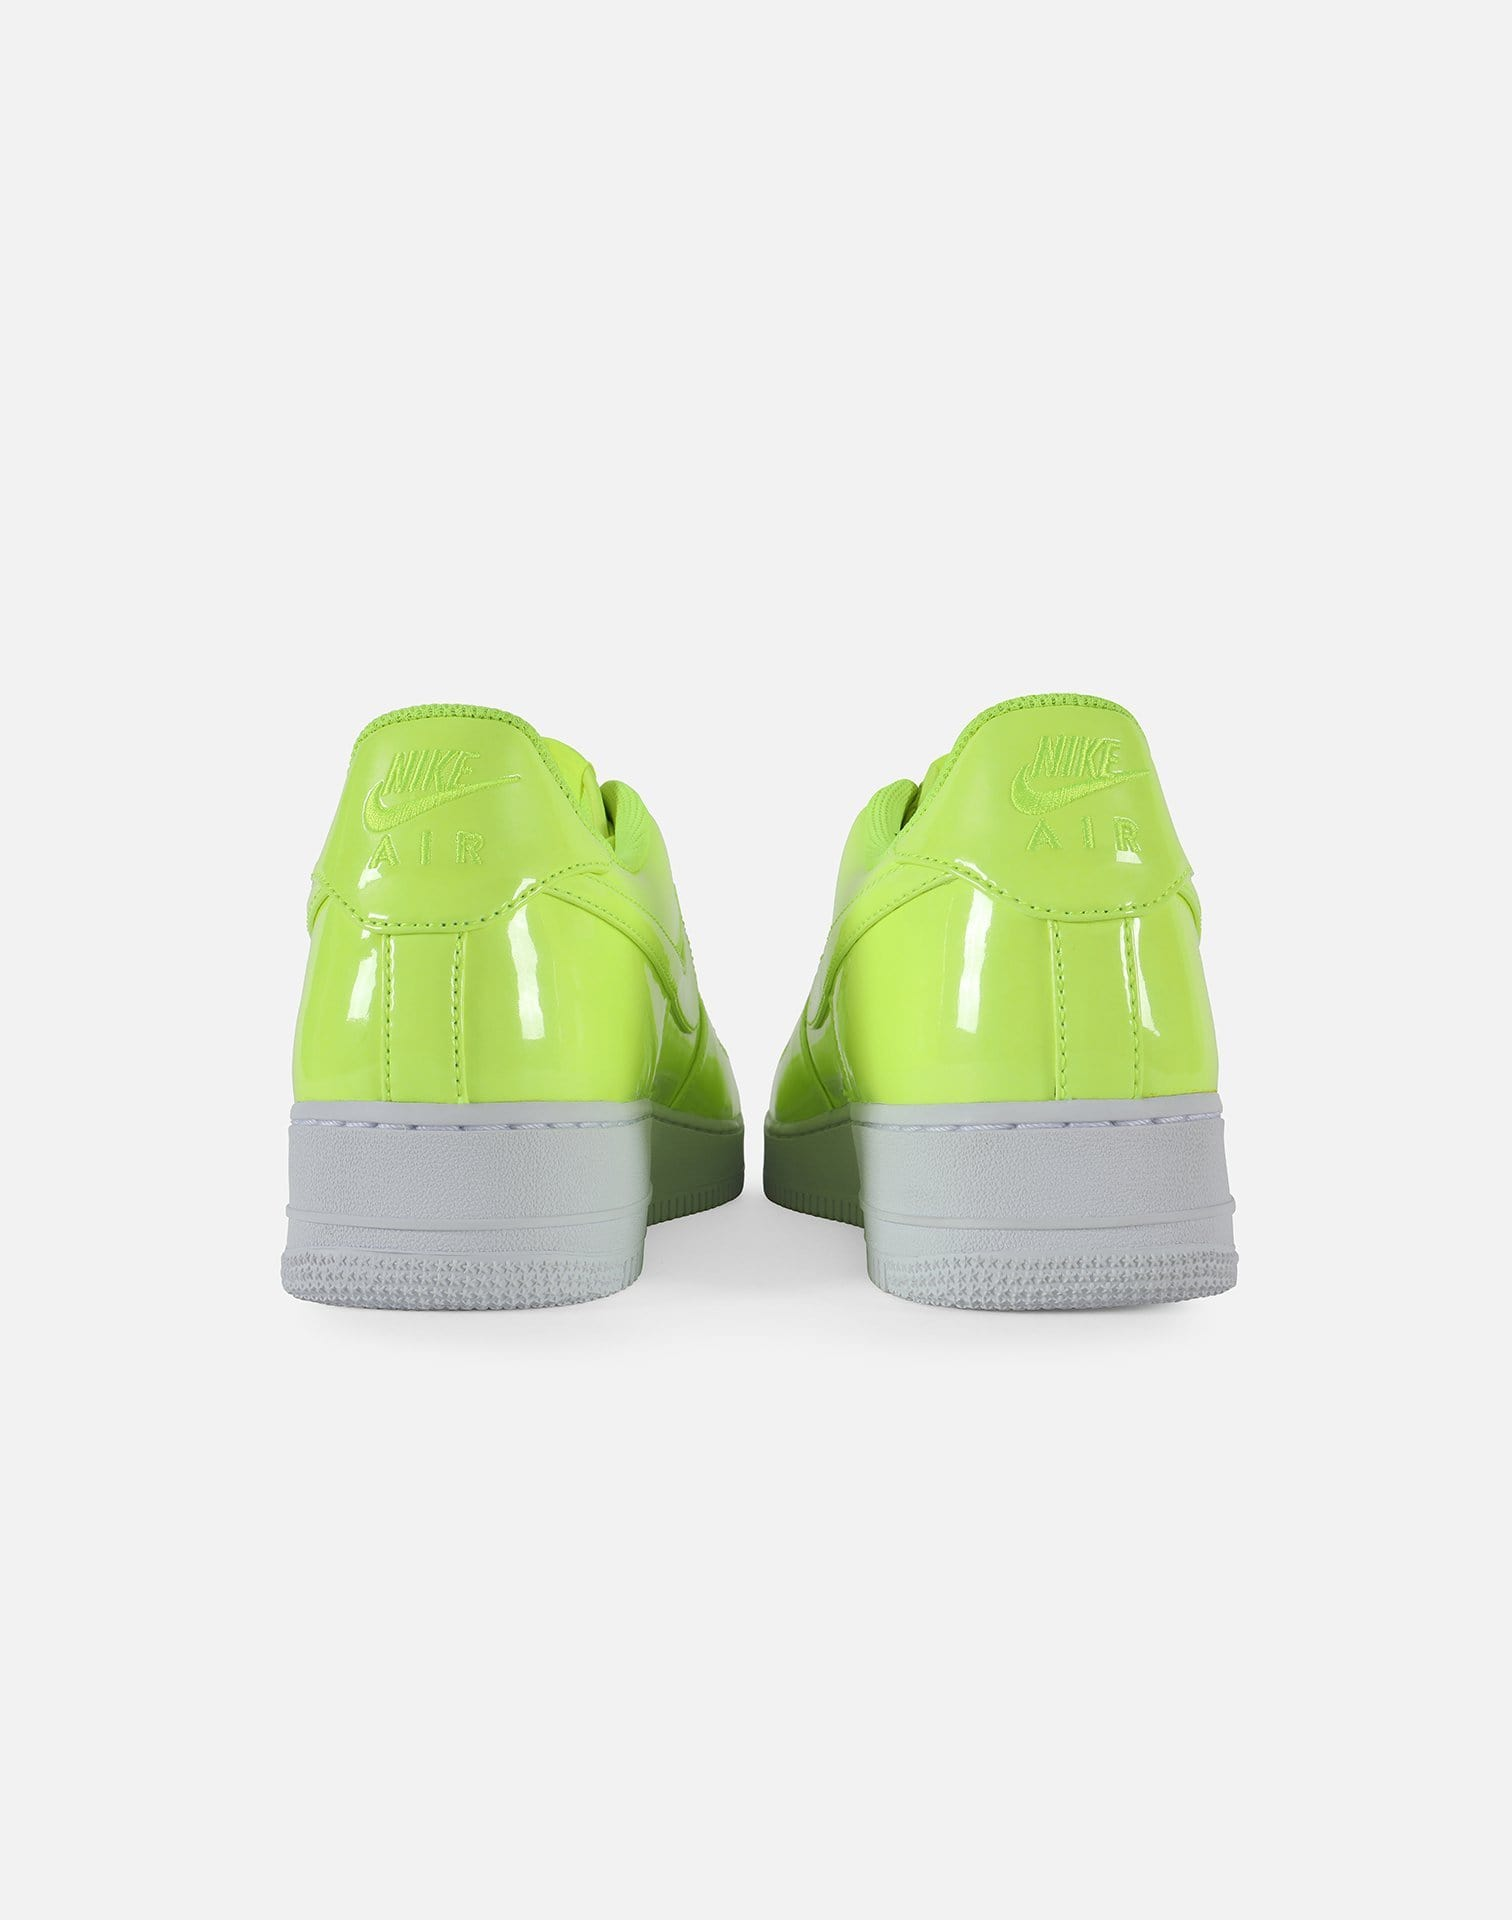 Nike Men's Air Force 1 '07 LV8 UV